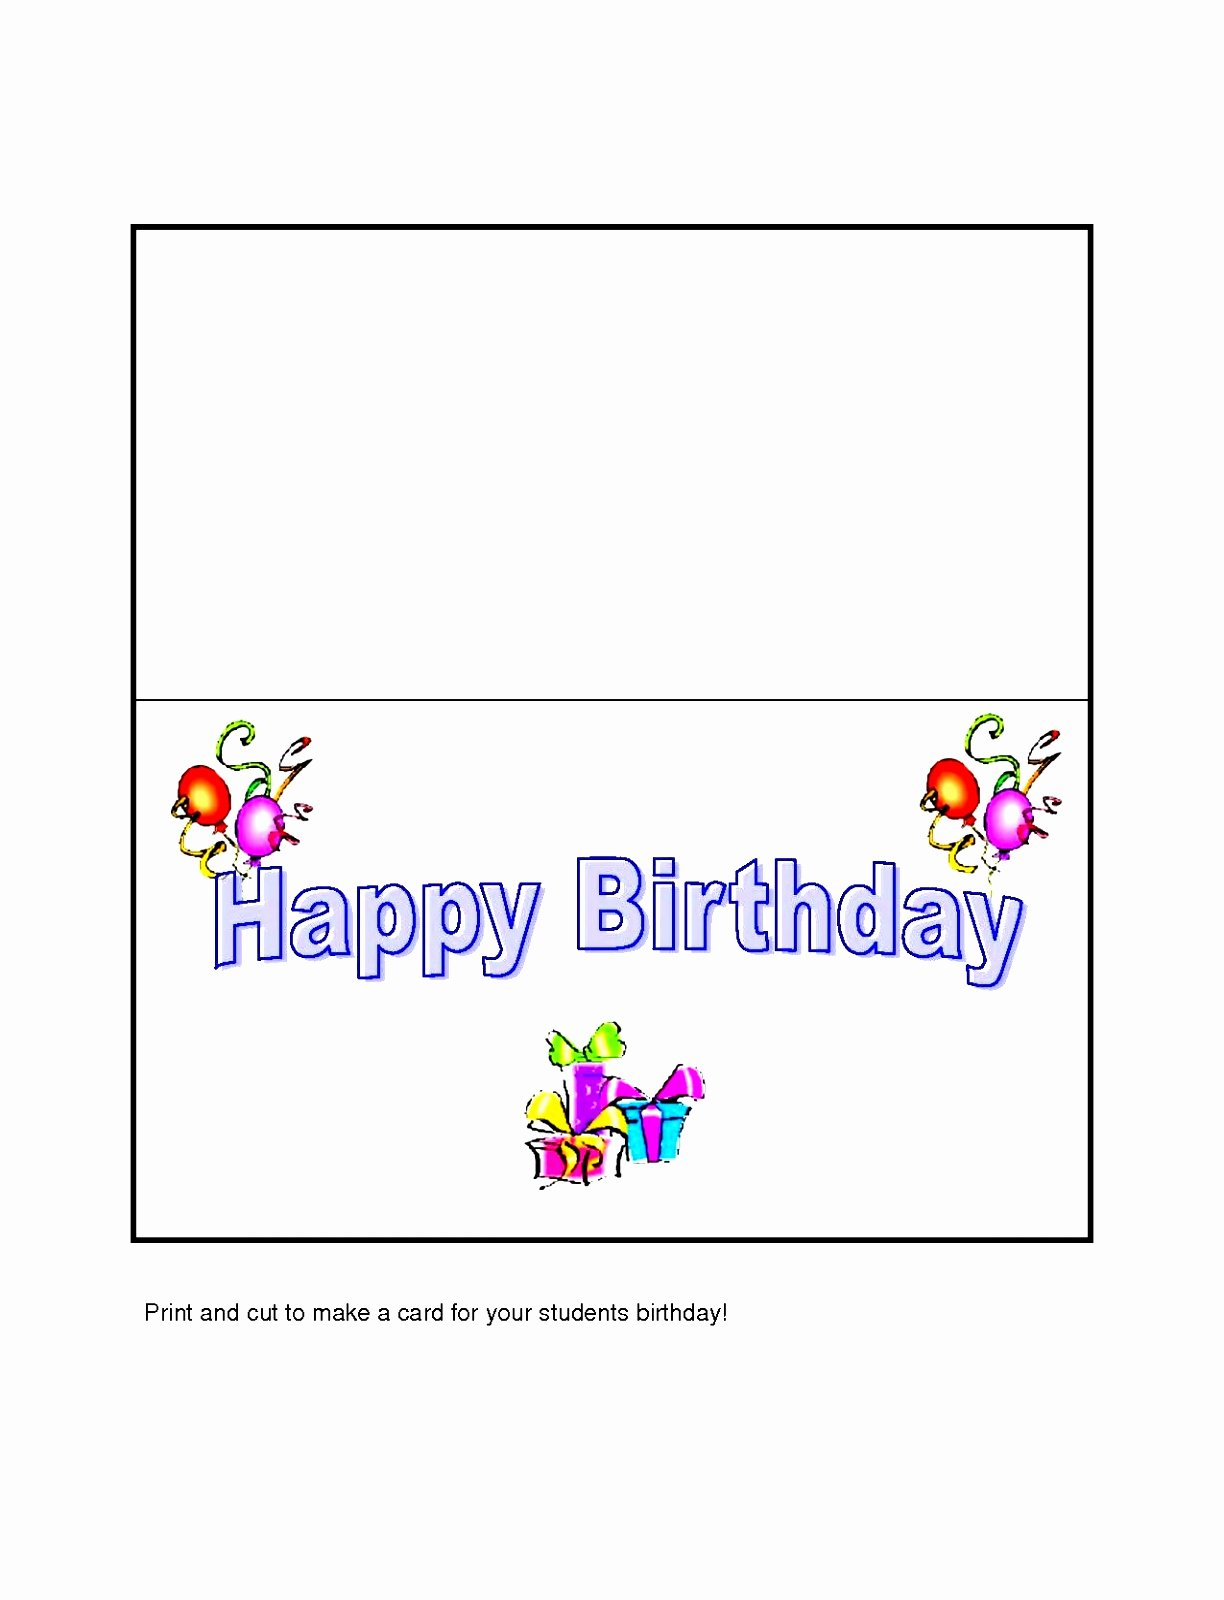 Ms Word Birthday Card Template Lovely 10 Microsoft Publisher Birthday Card Templates Yoaeo